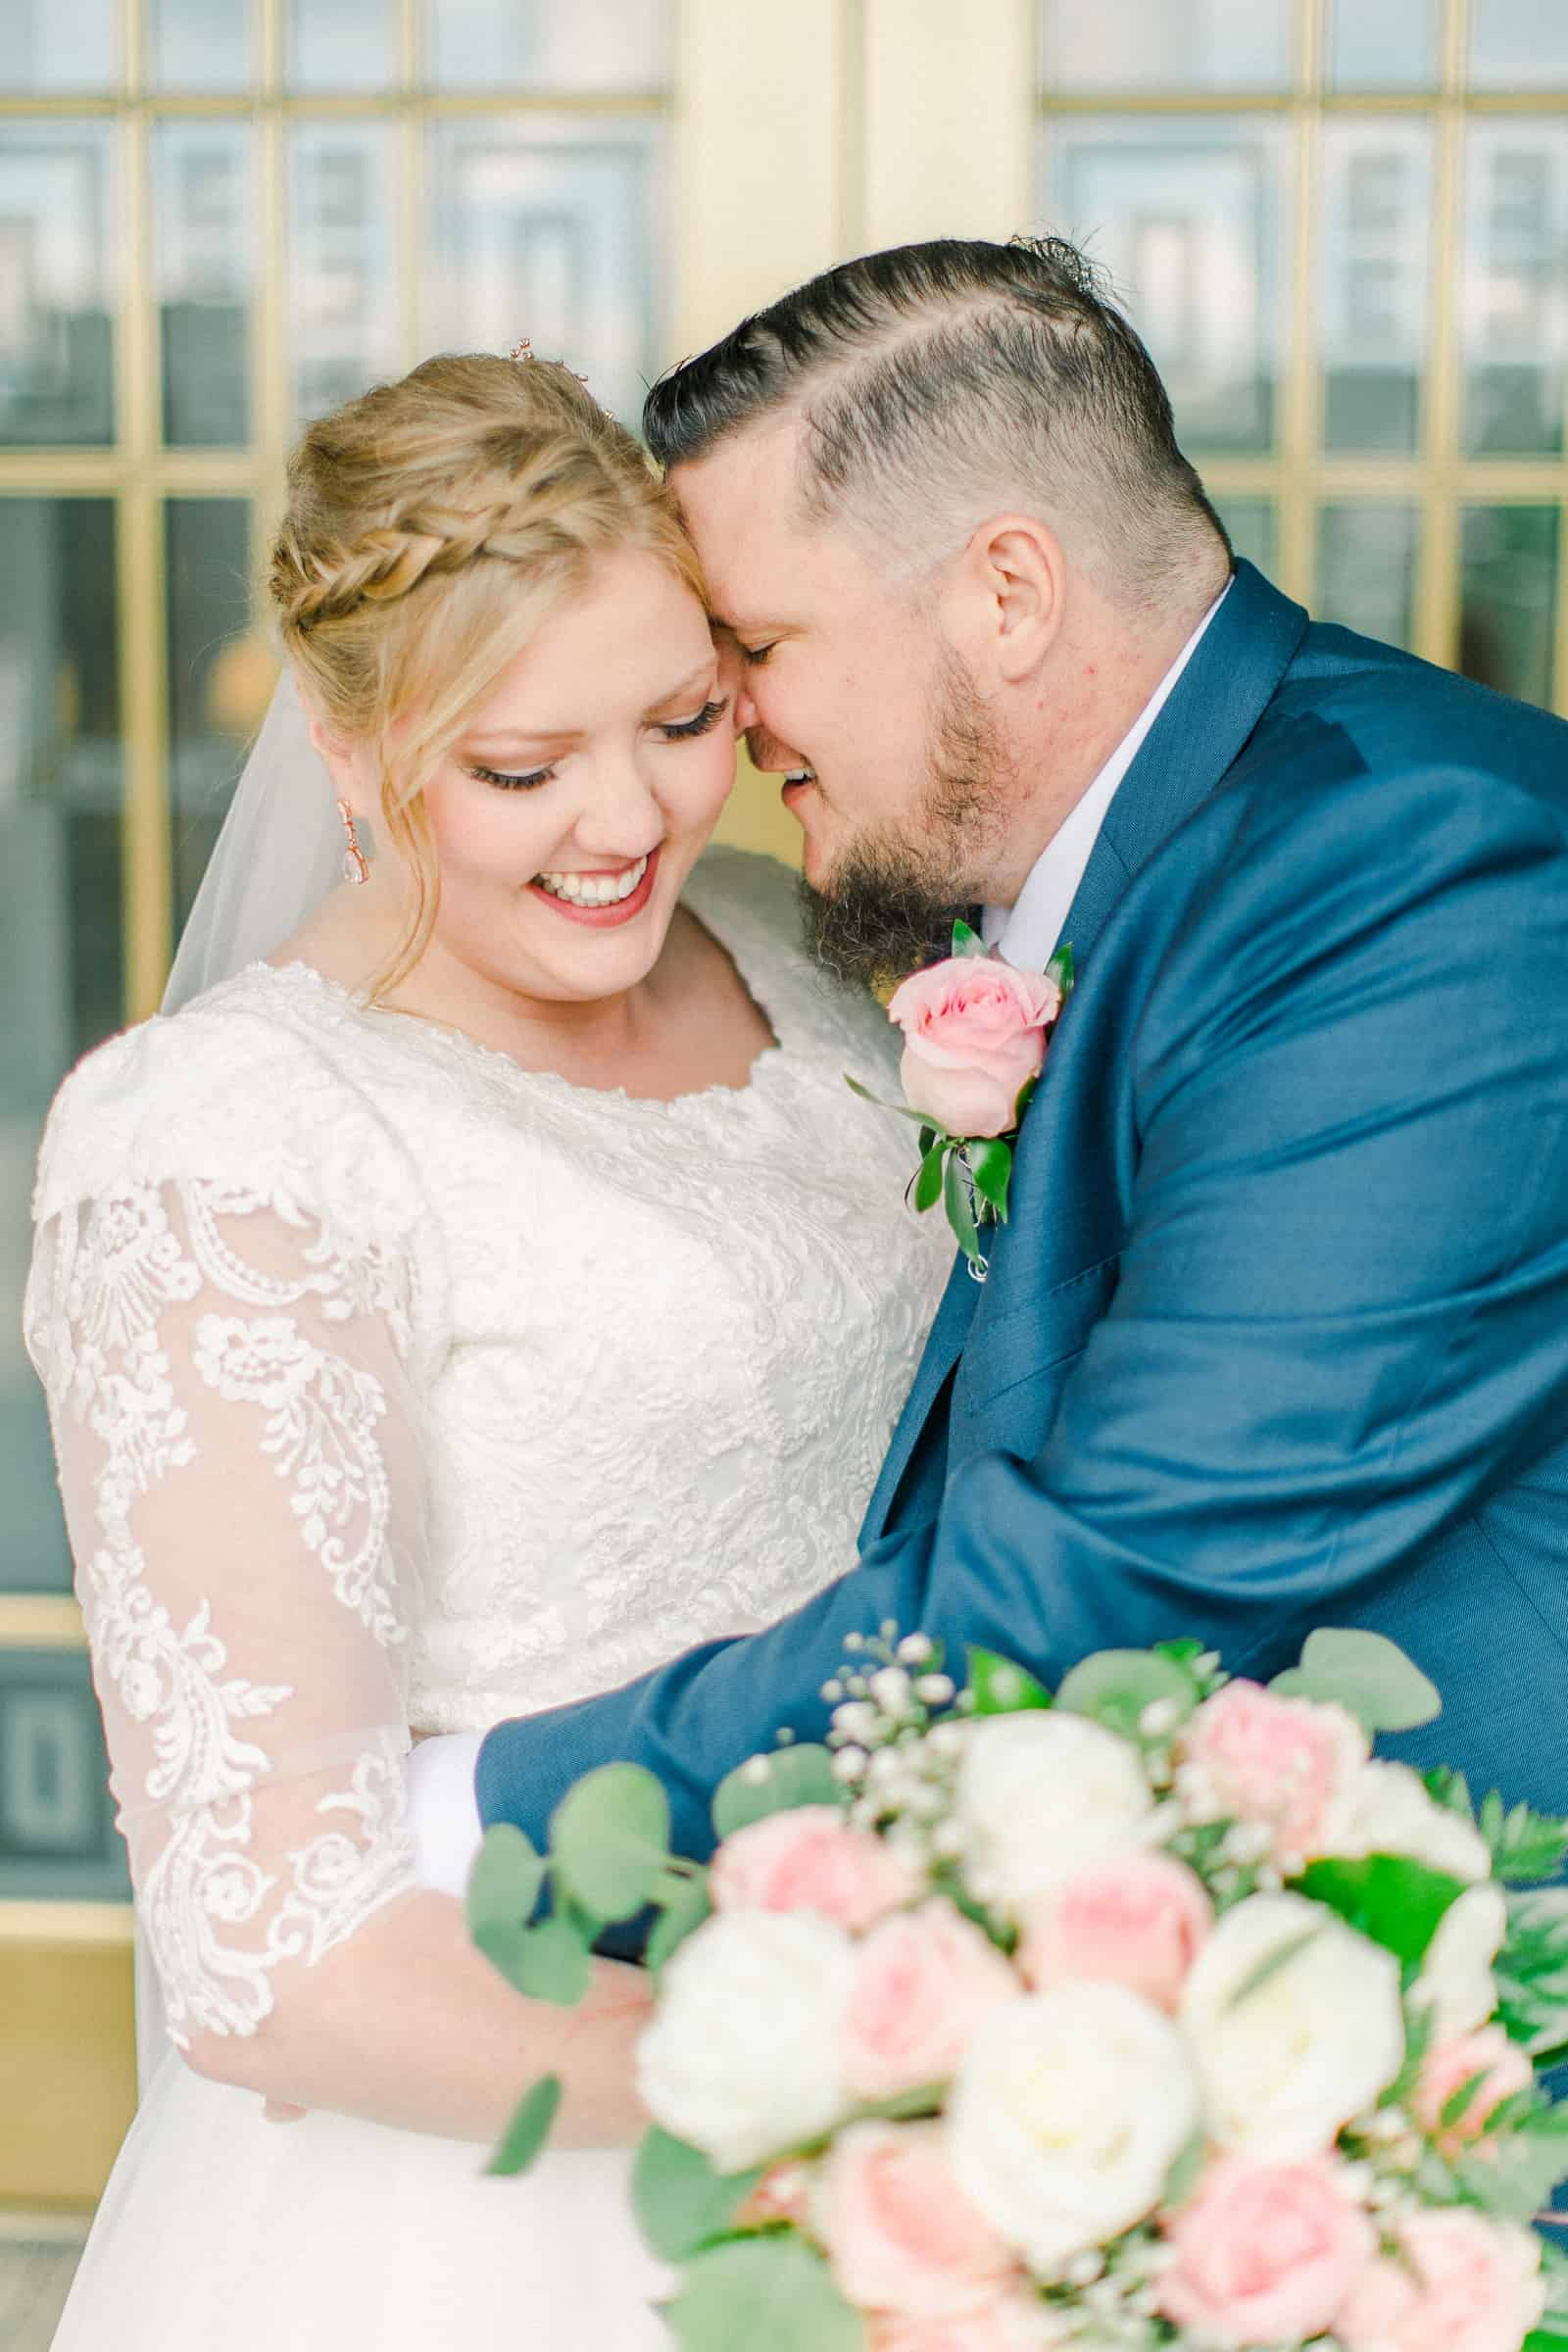 Draper LDS Temple Wedding, Utah wedding photography, summer backyard wedding, sweet bride and groom, pink and white rose bouquet